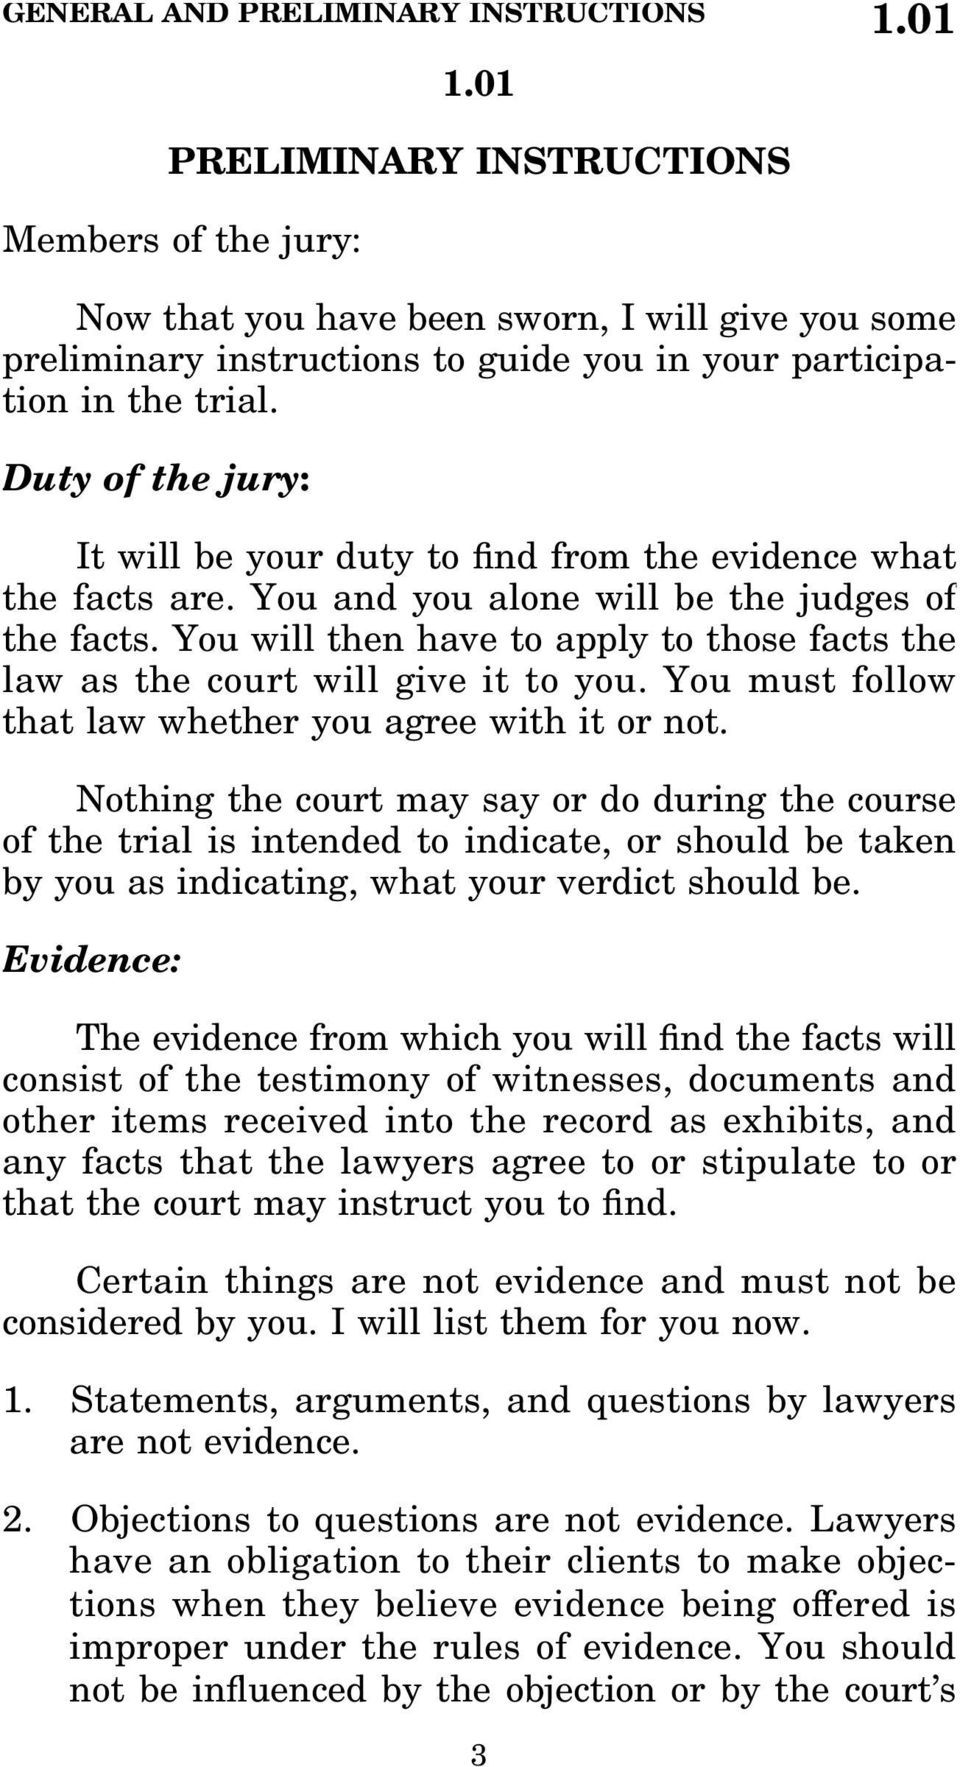 Duty of the jury: It will be your duty to nd from the evidence what the facts are. You and you alone will be the judges of the facts.